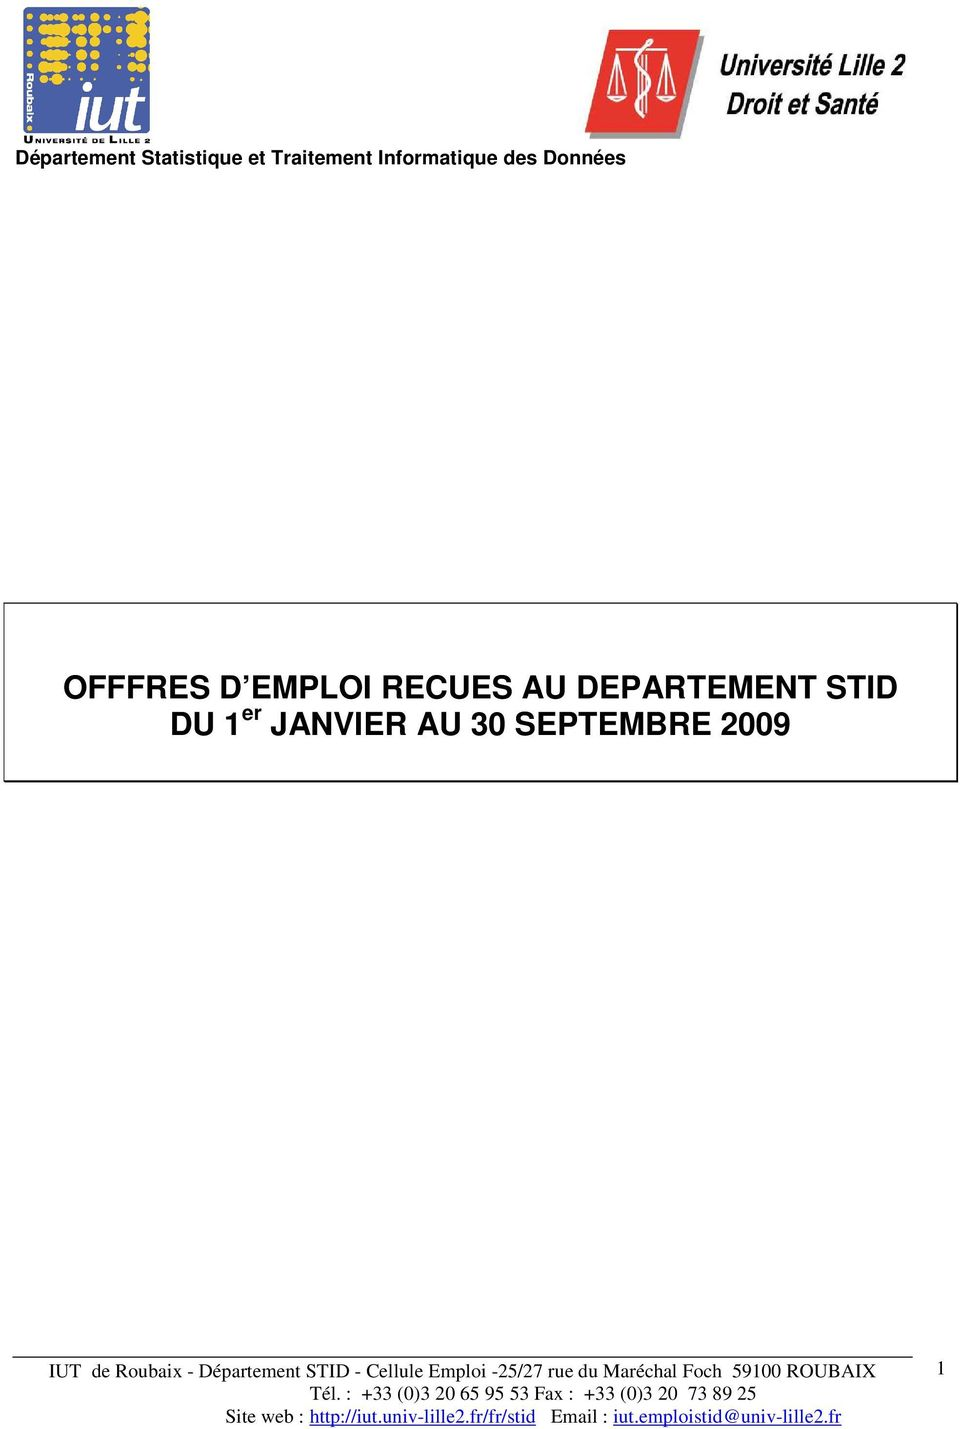 DEPARTEMENT STID DU